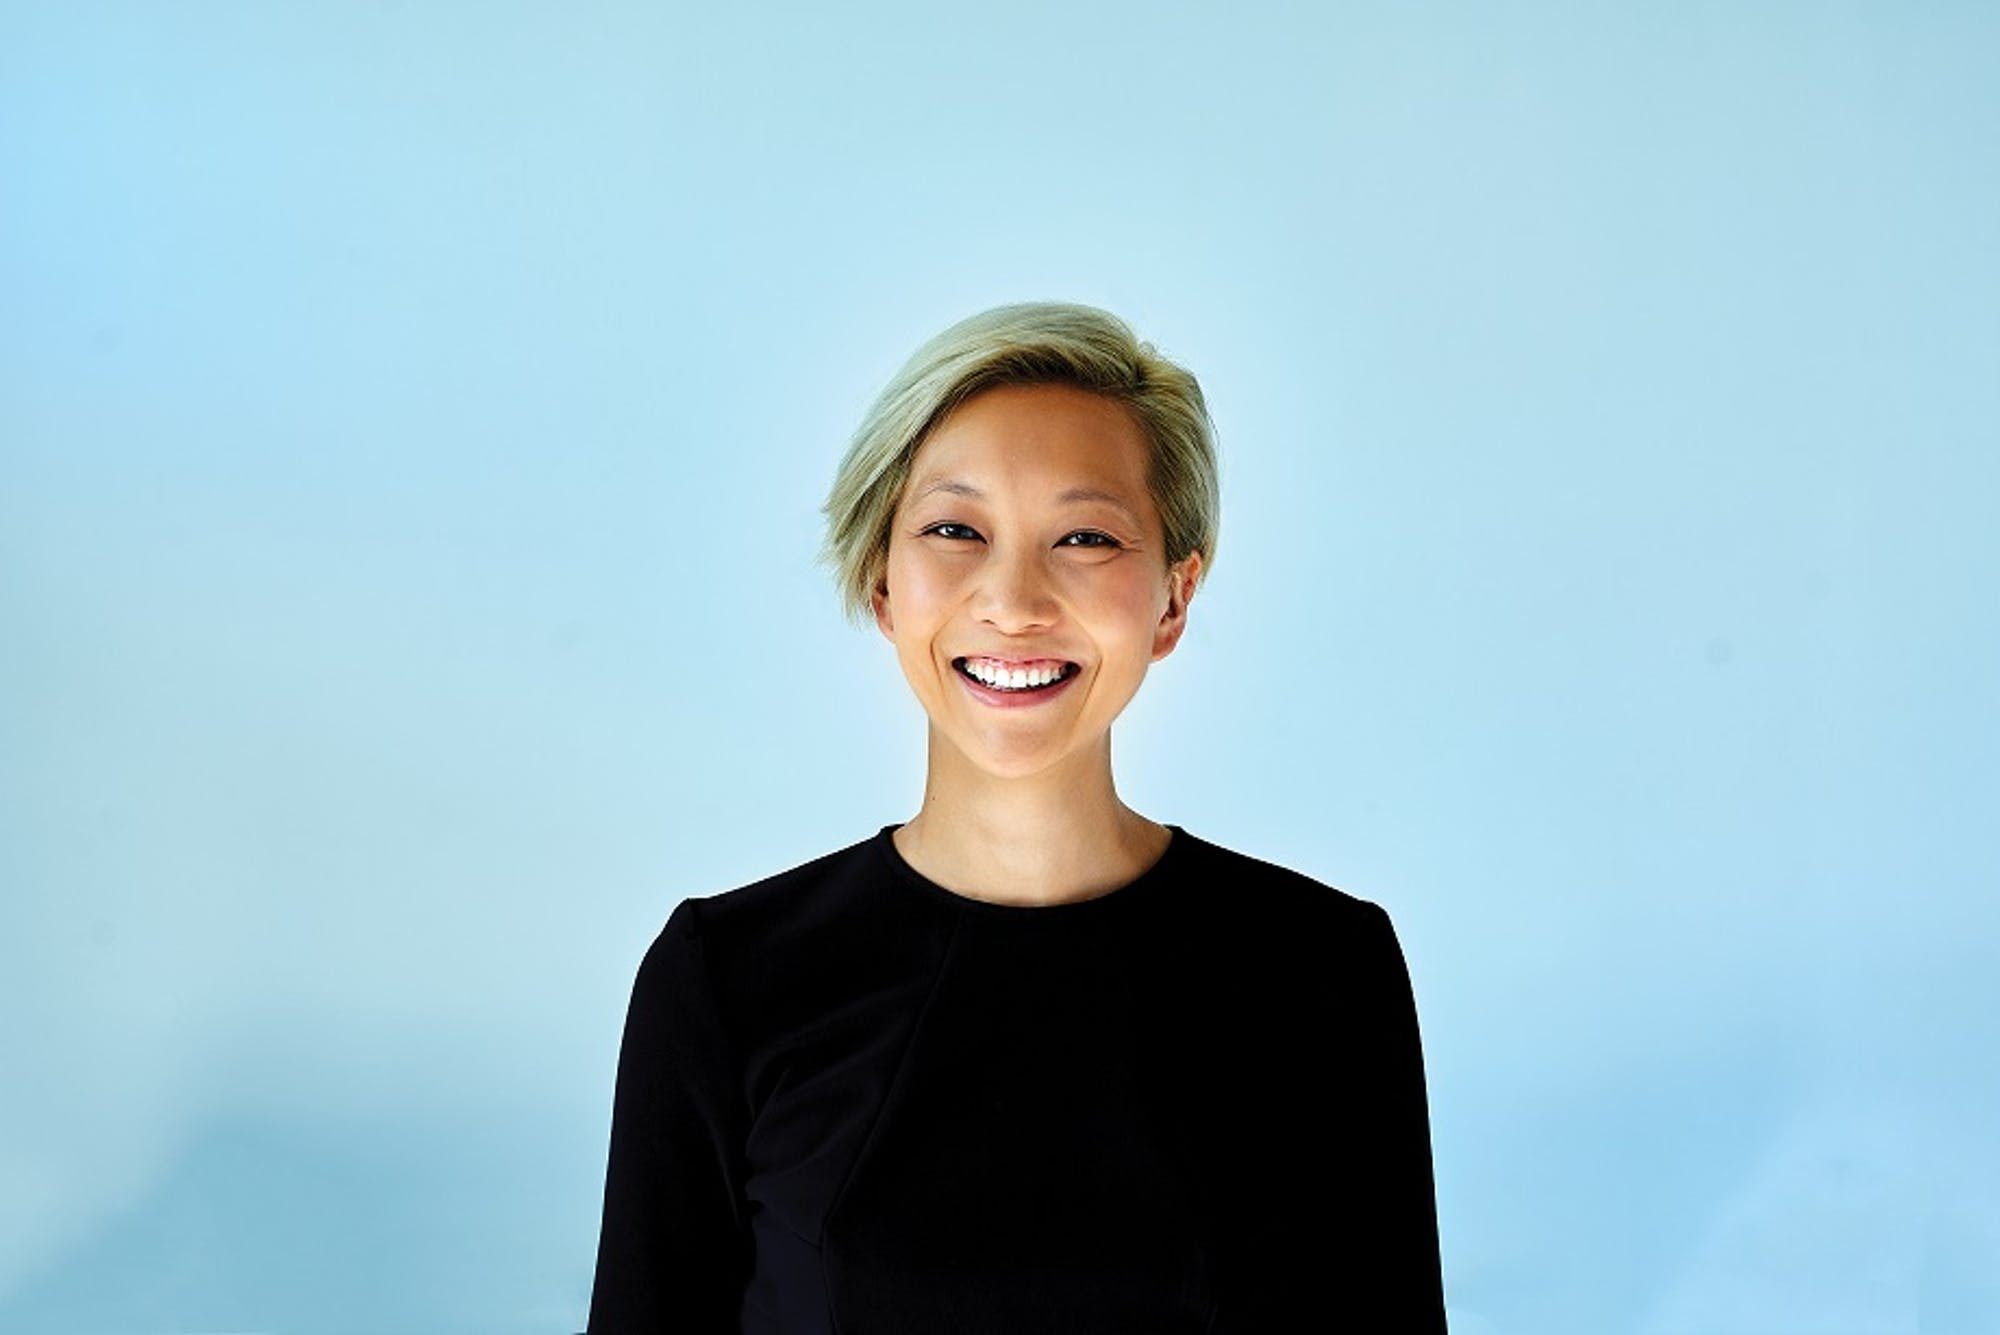 Five Minutes with the Founder  Joanna Dai, Founder, Dai